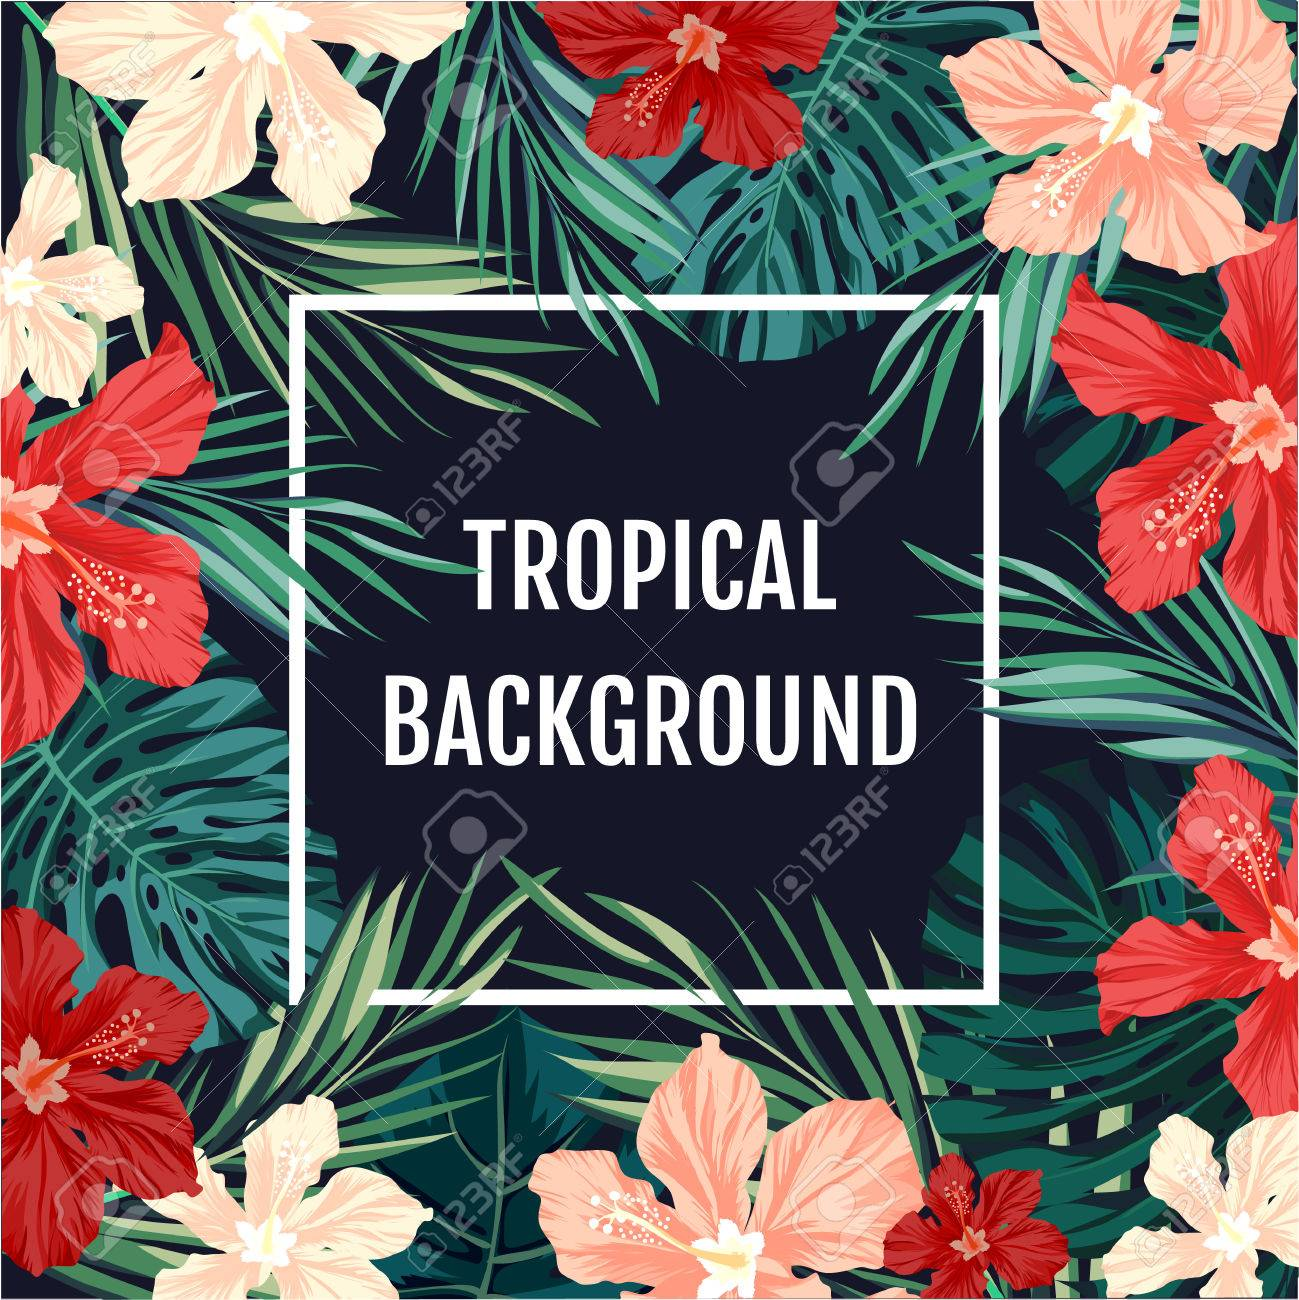 Summer tropical hawaiian sale background with palm tree leavs summer tropical hawaiian sale background with palm tree leavs and exotic flowers space for text izmirmasajfo Images